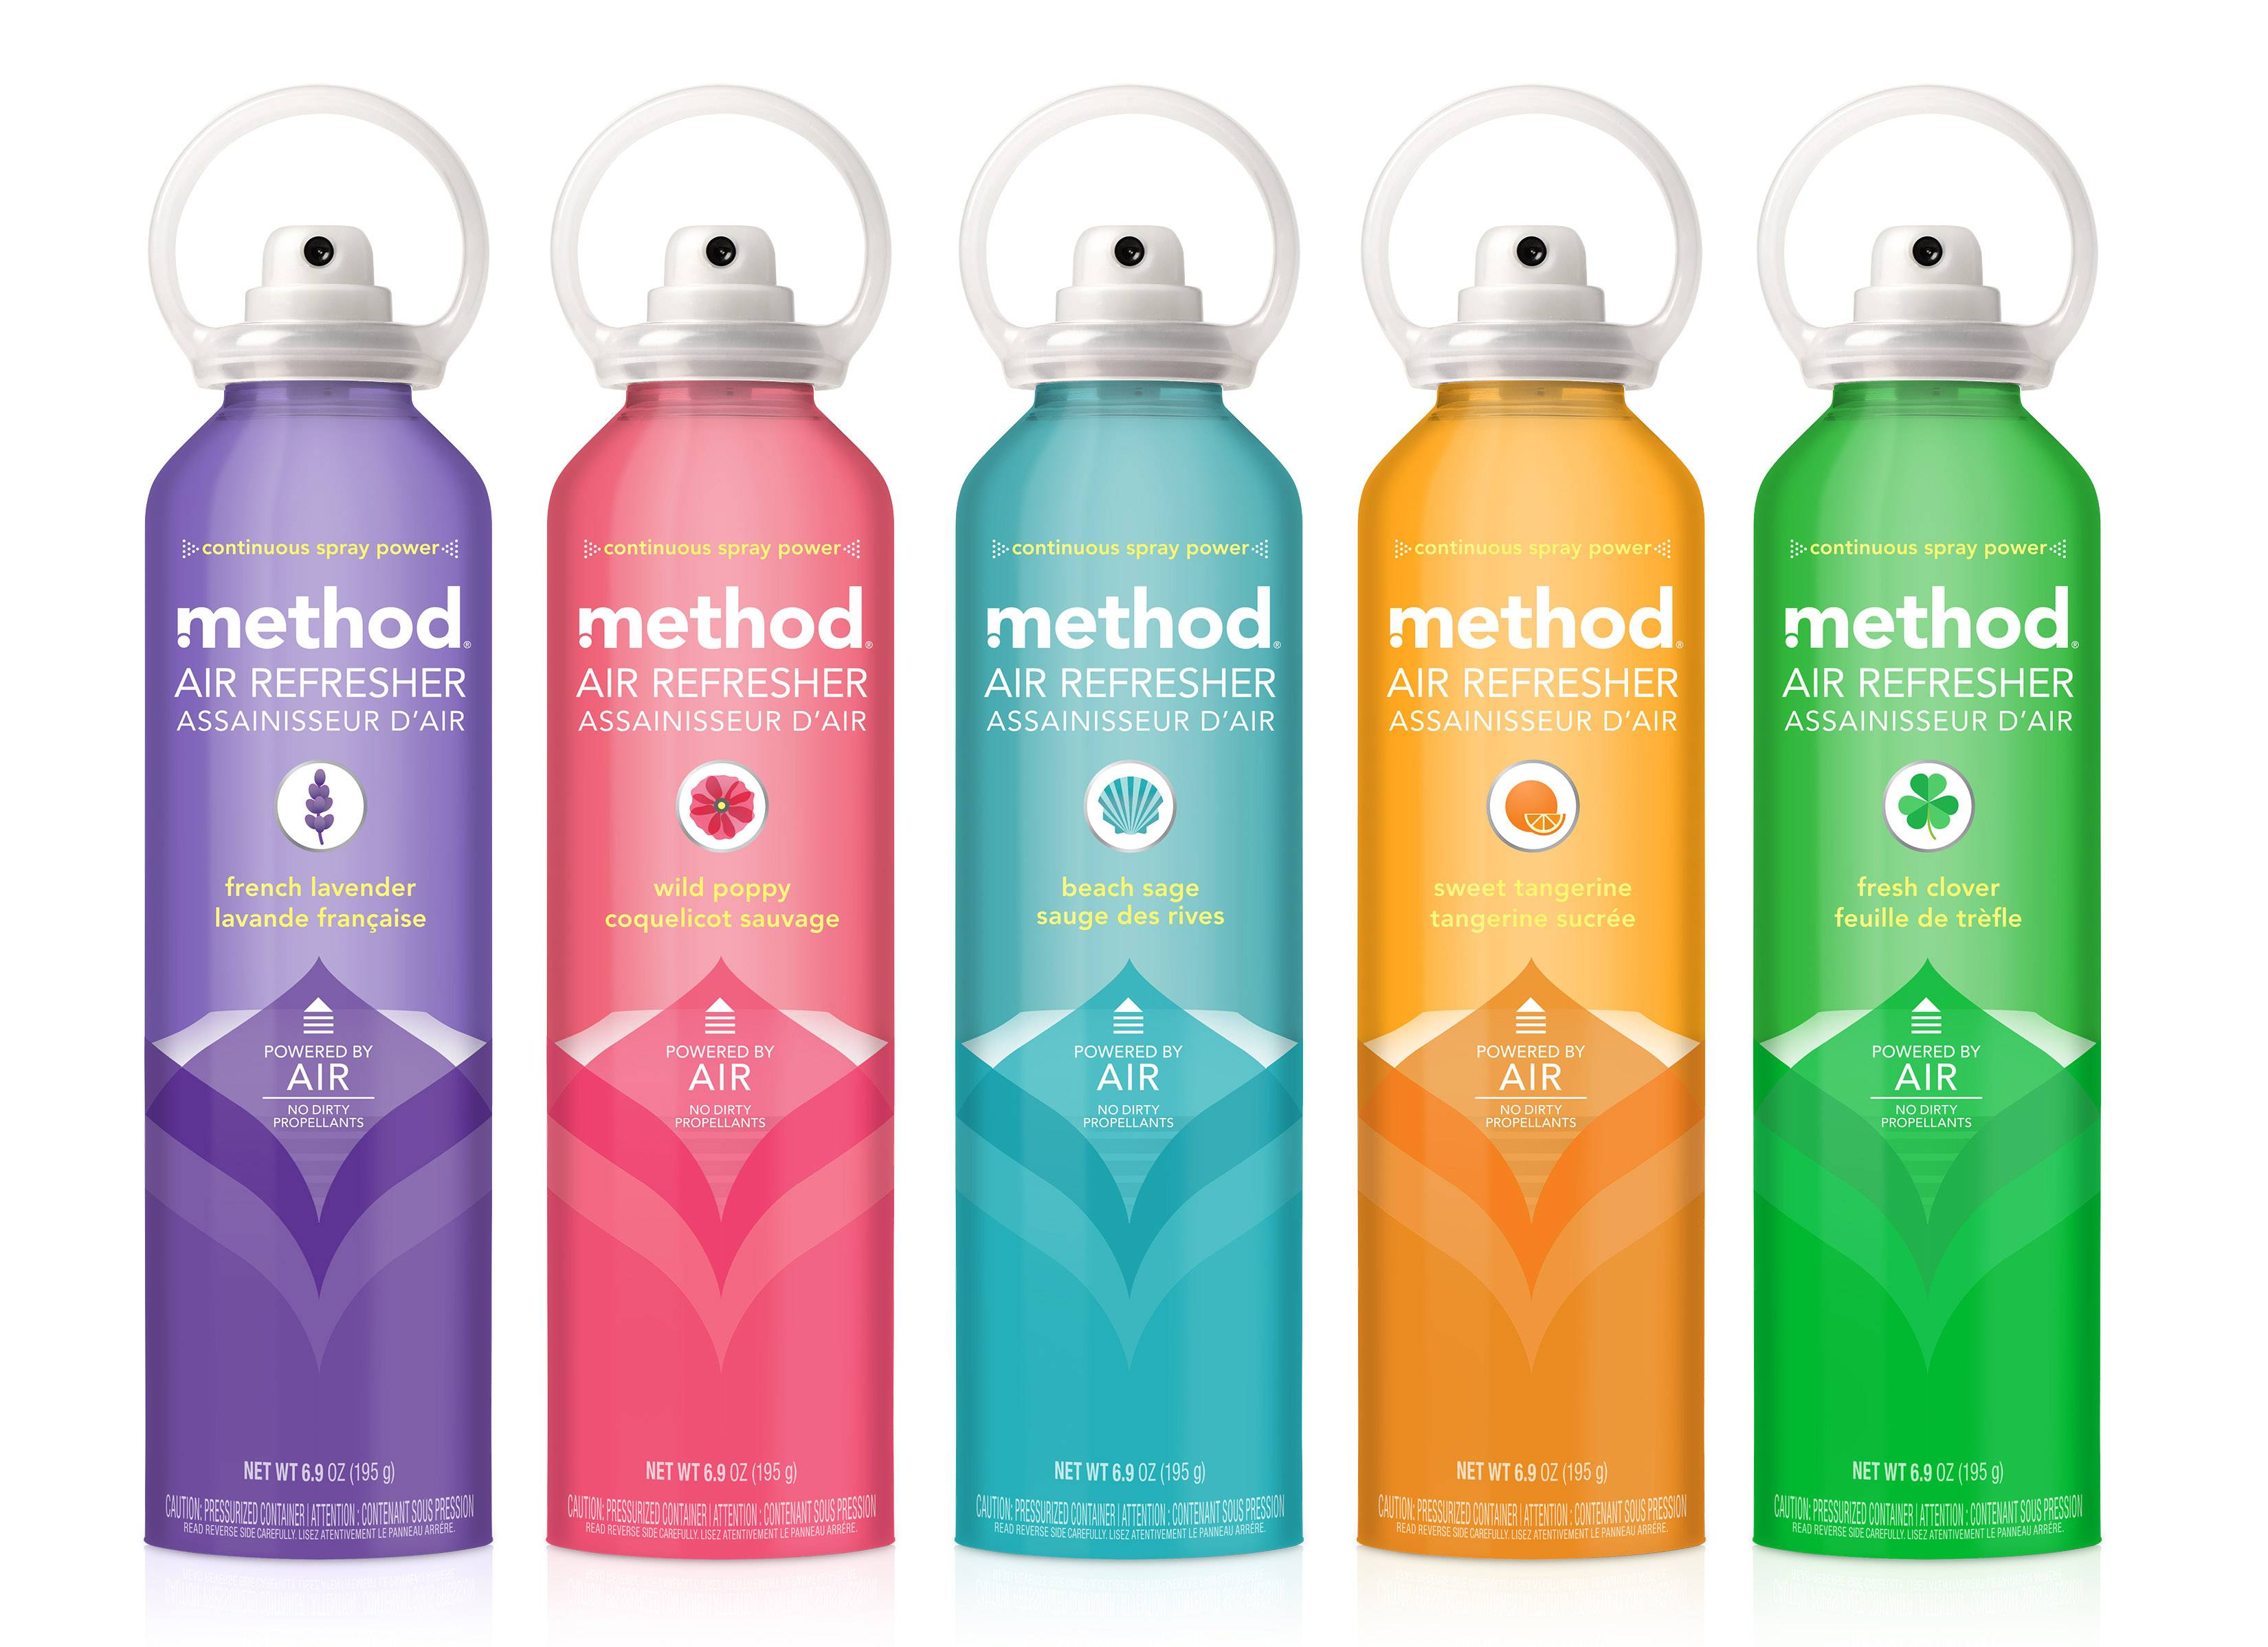 Method's non-aerosol air freshener.